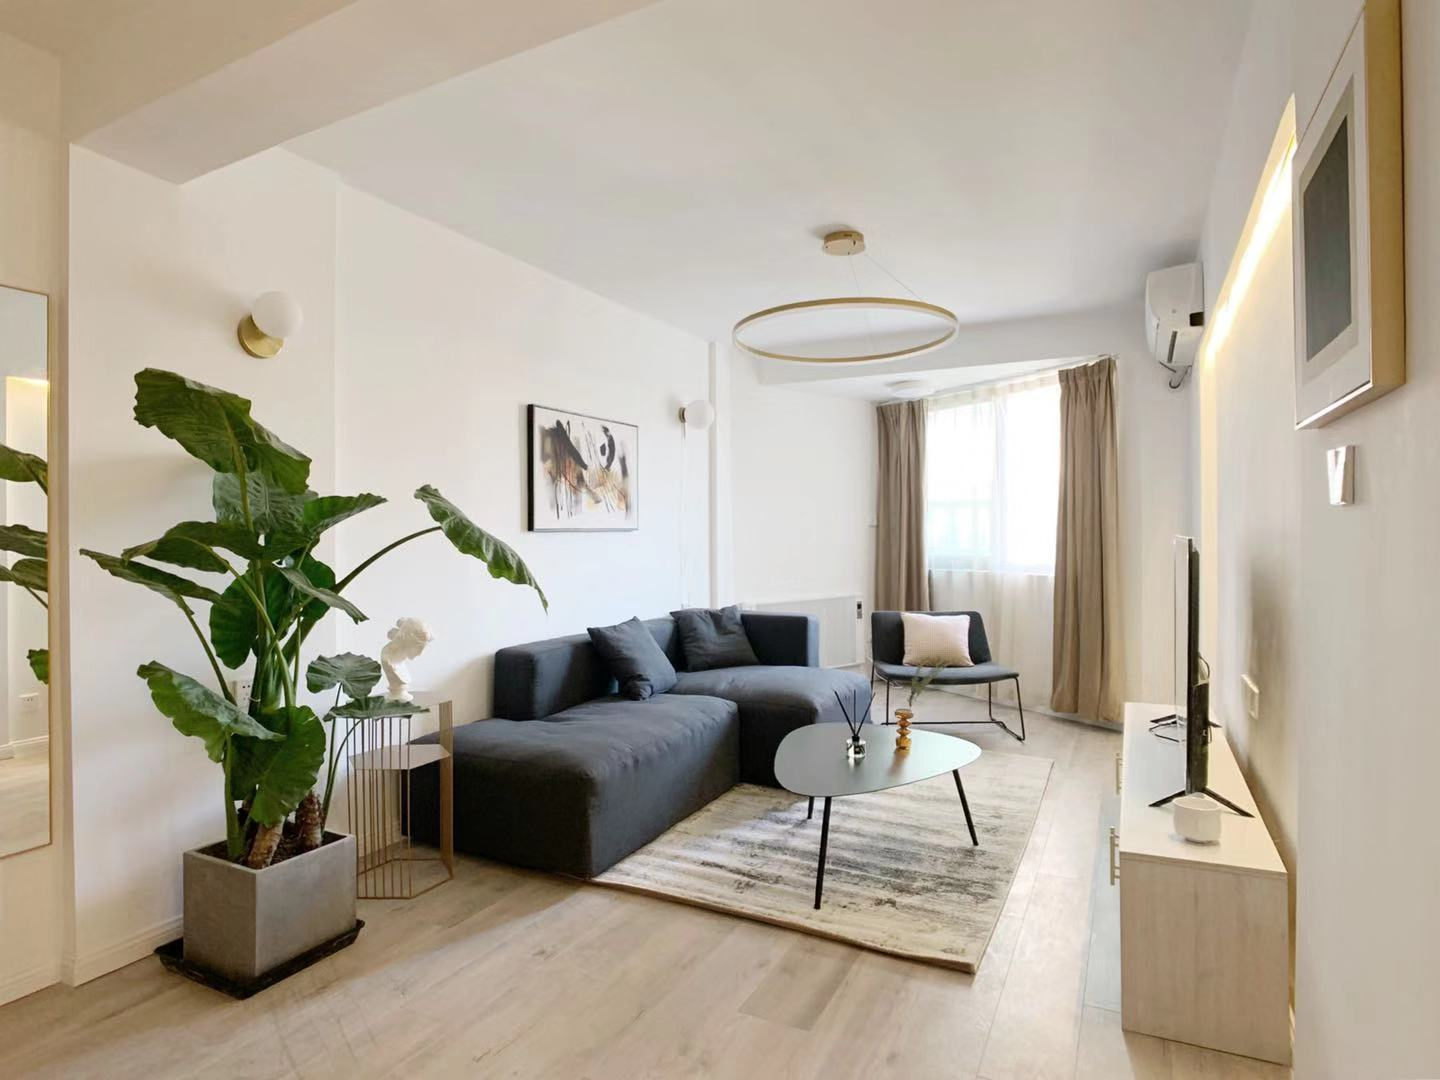 Bright and new 1 br 85sqm near West nanjing road with elevator